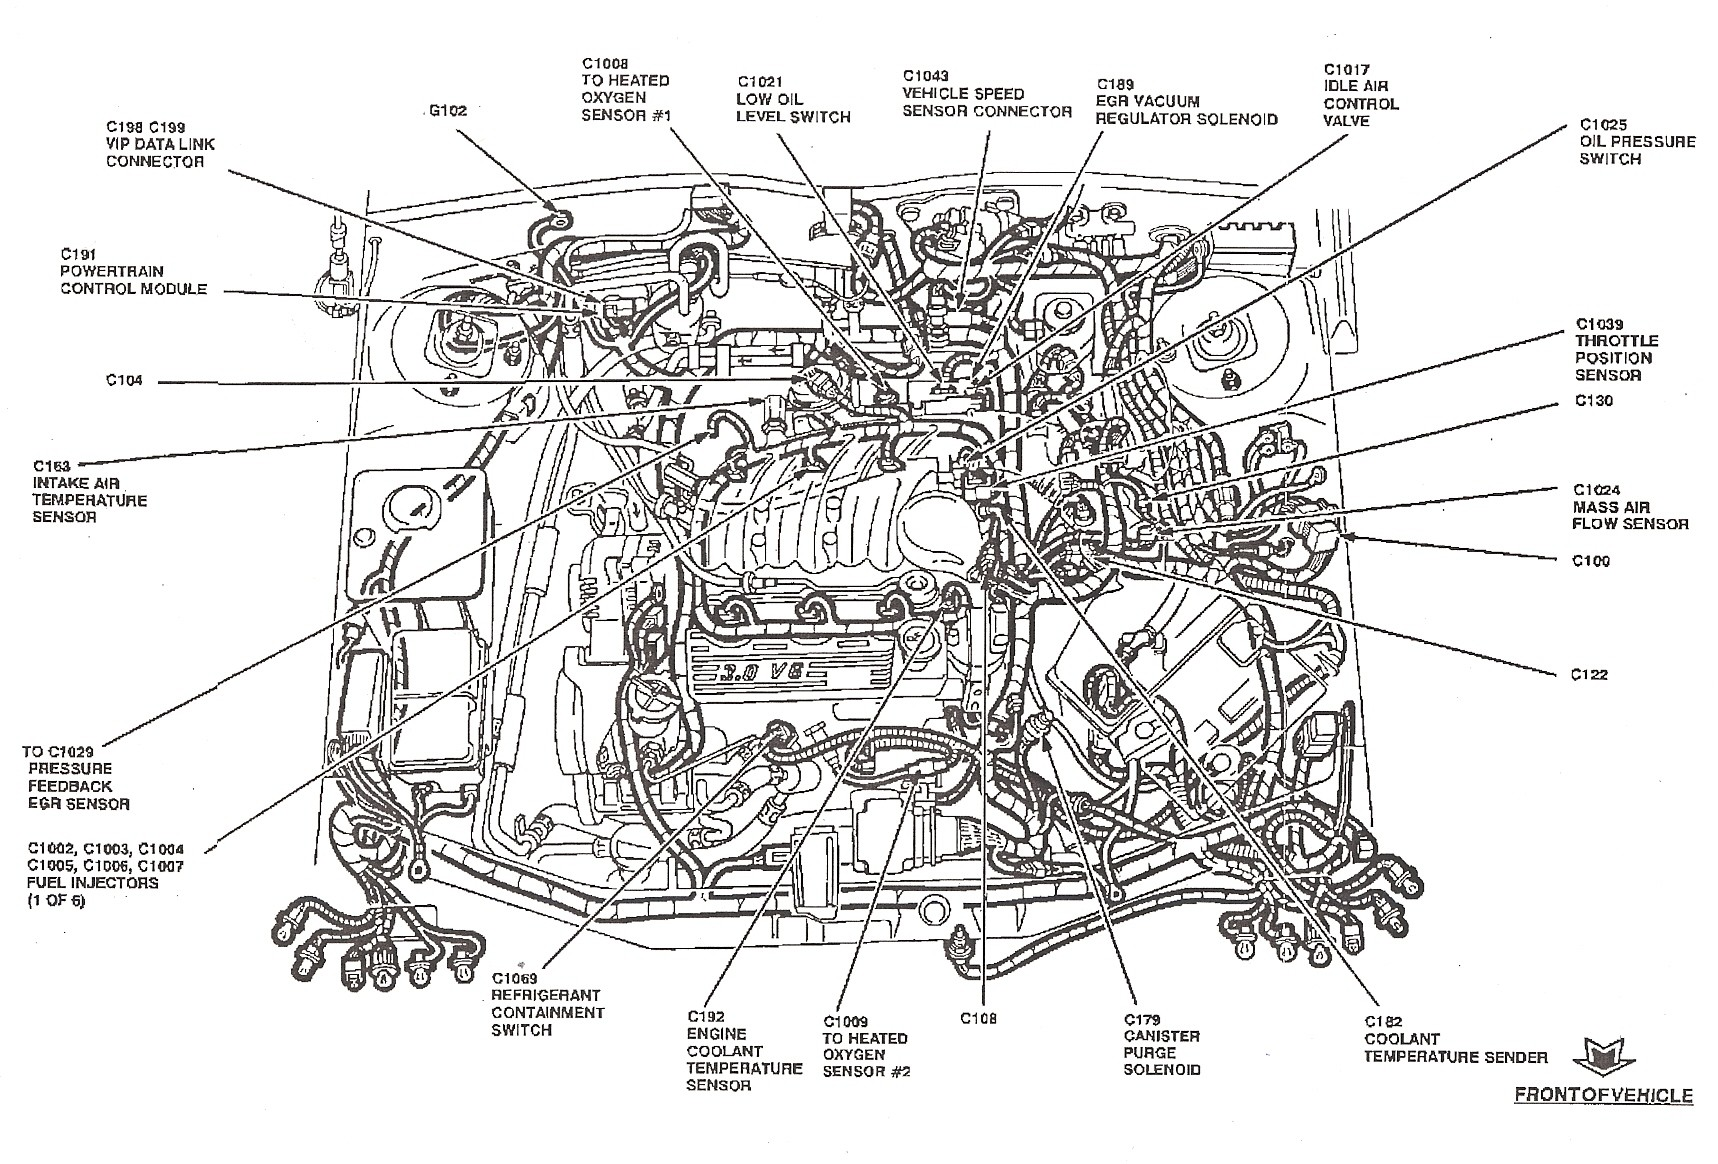 hight resolution of ford fusion engine parts diagram wiring diagram option 2006 ford fusion 2 4l engine diagram